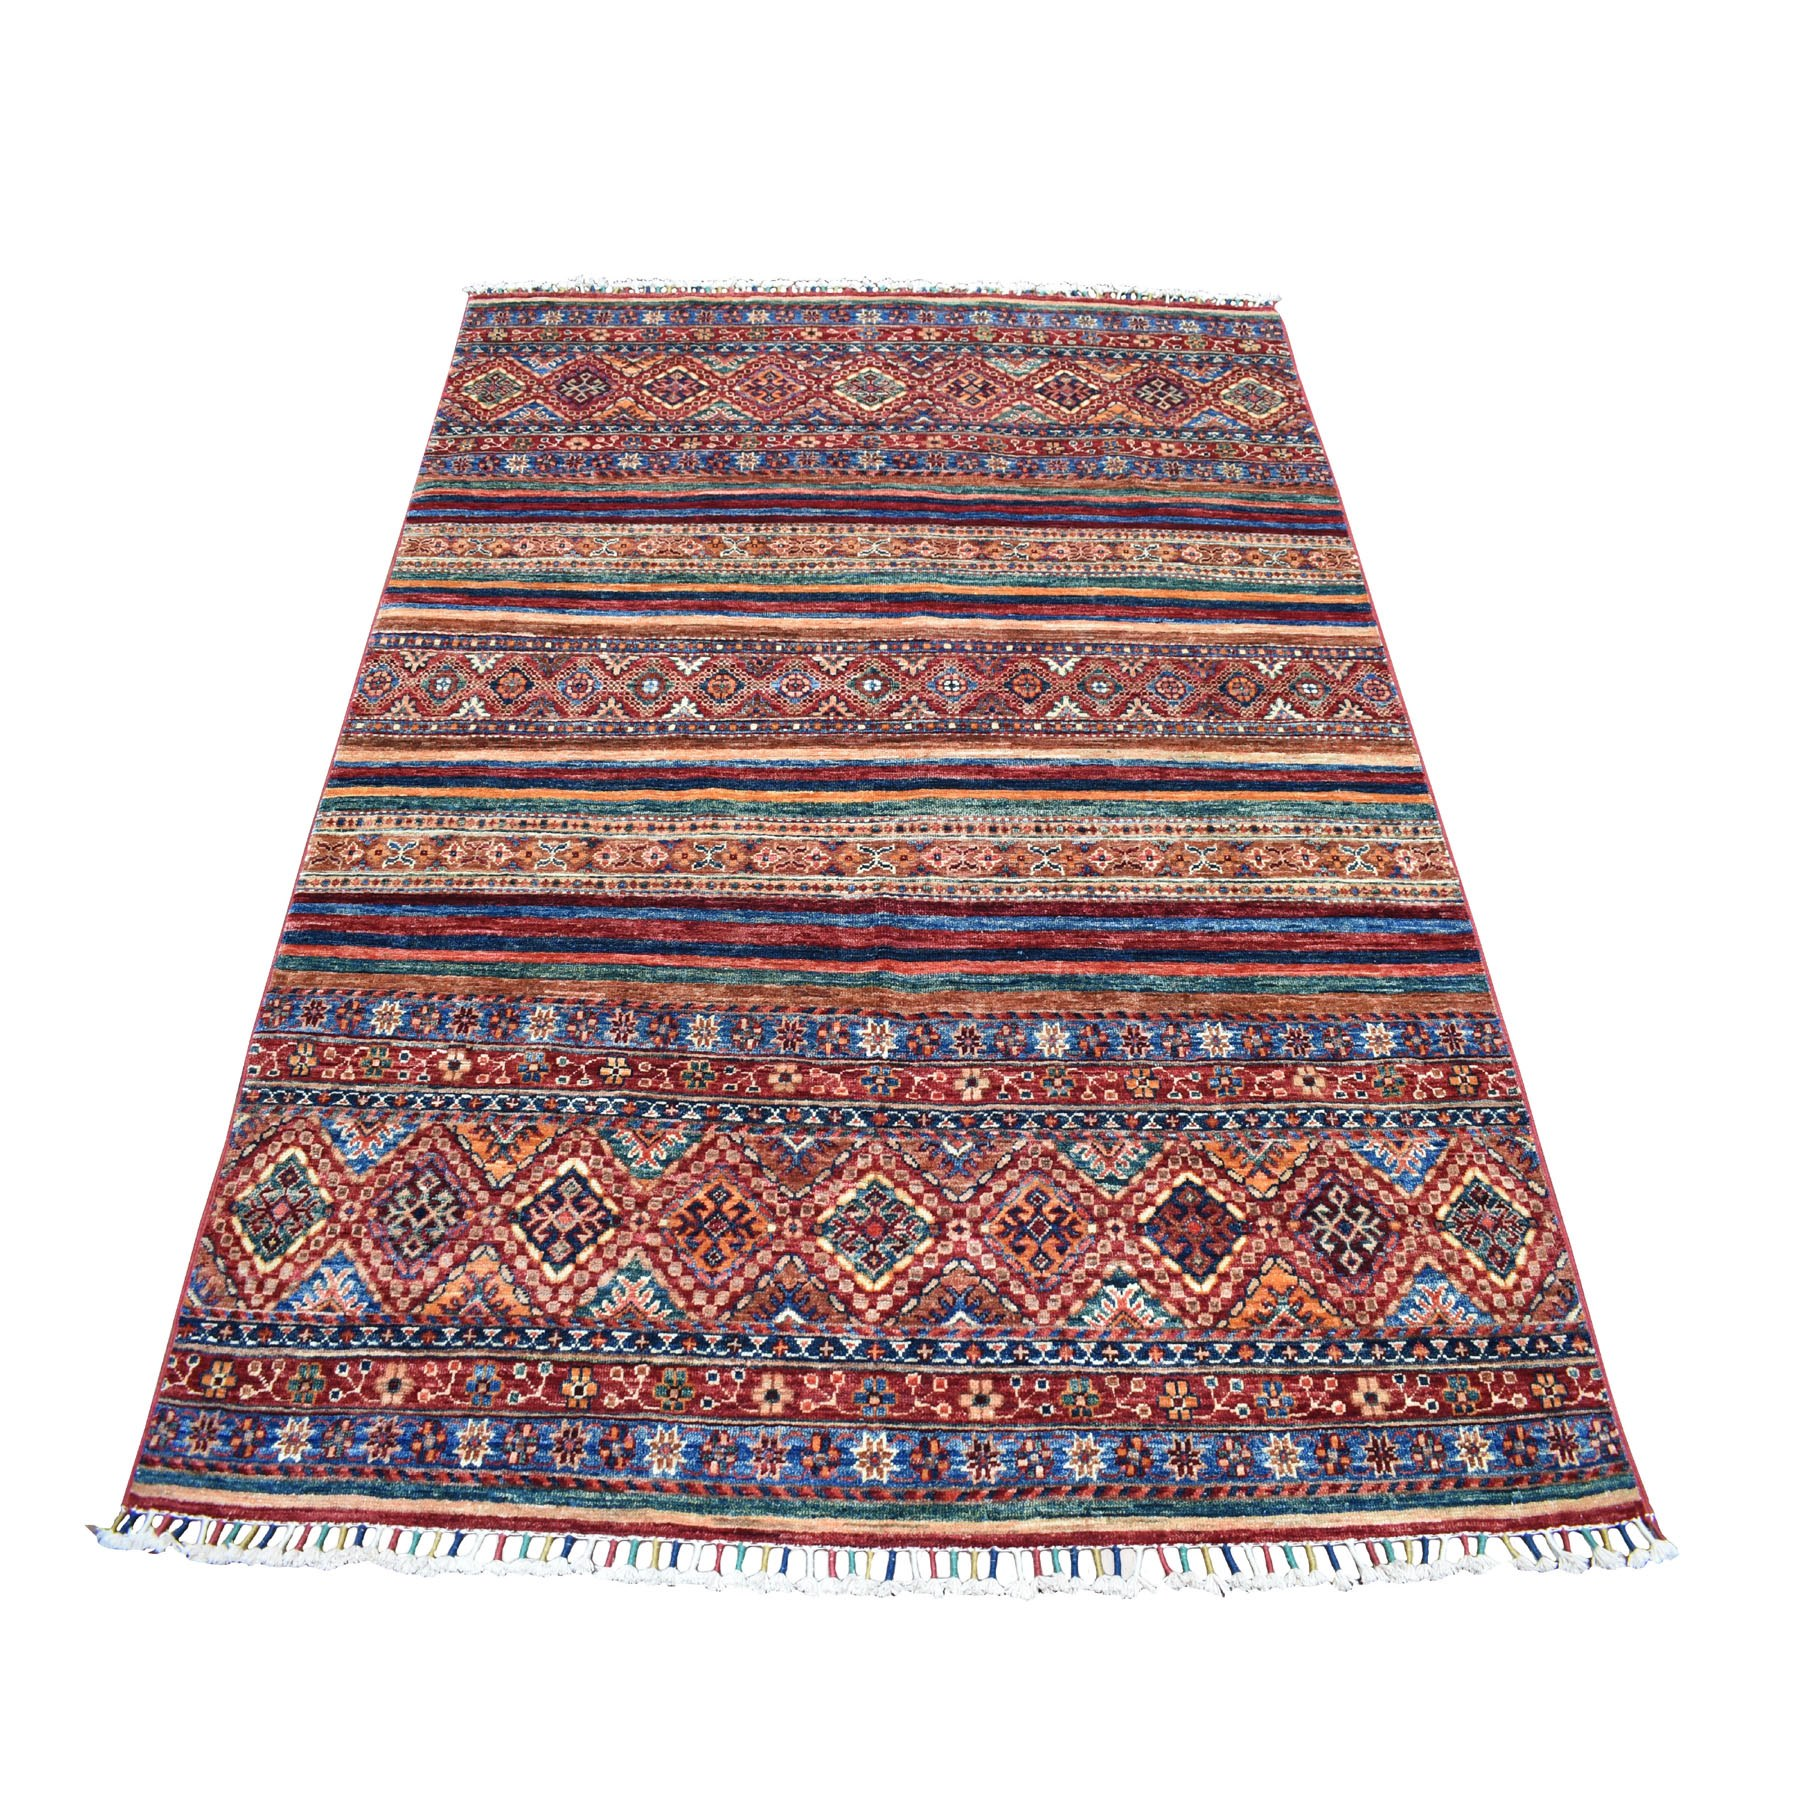 "5'x6'6"" Khorjin Design Colorful Super Kazak Pure Wool Hand Knotted Oriental Rug 52259"